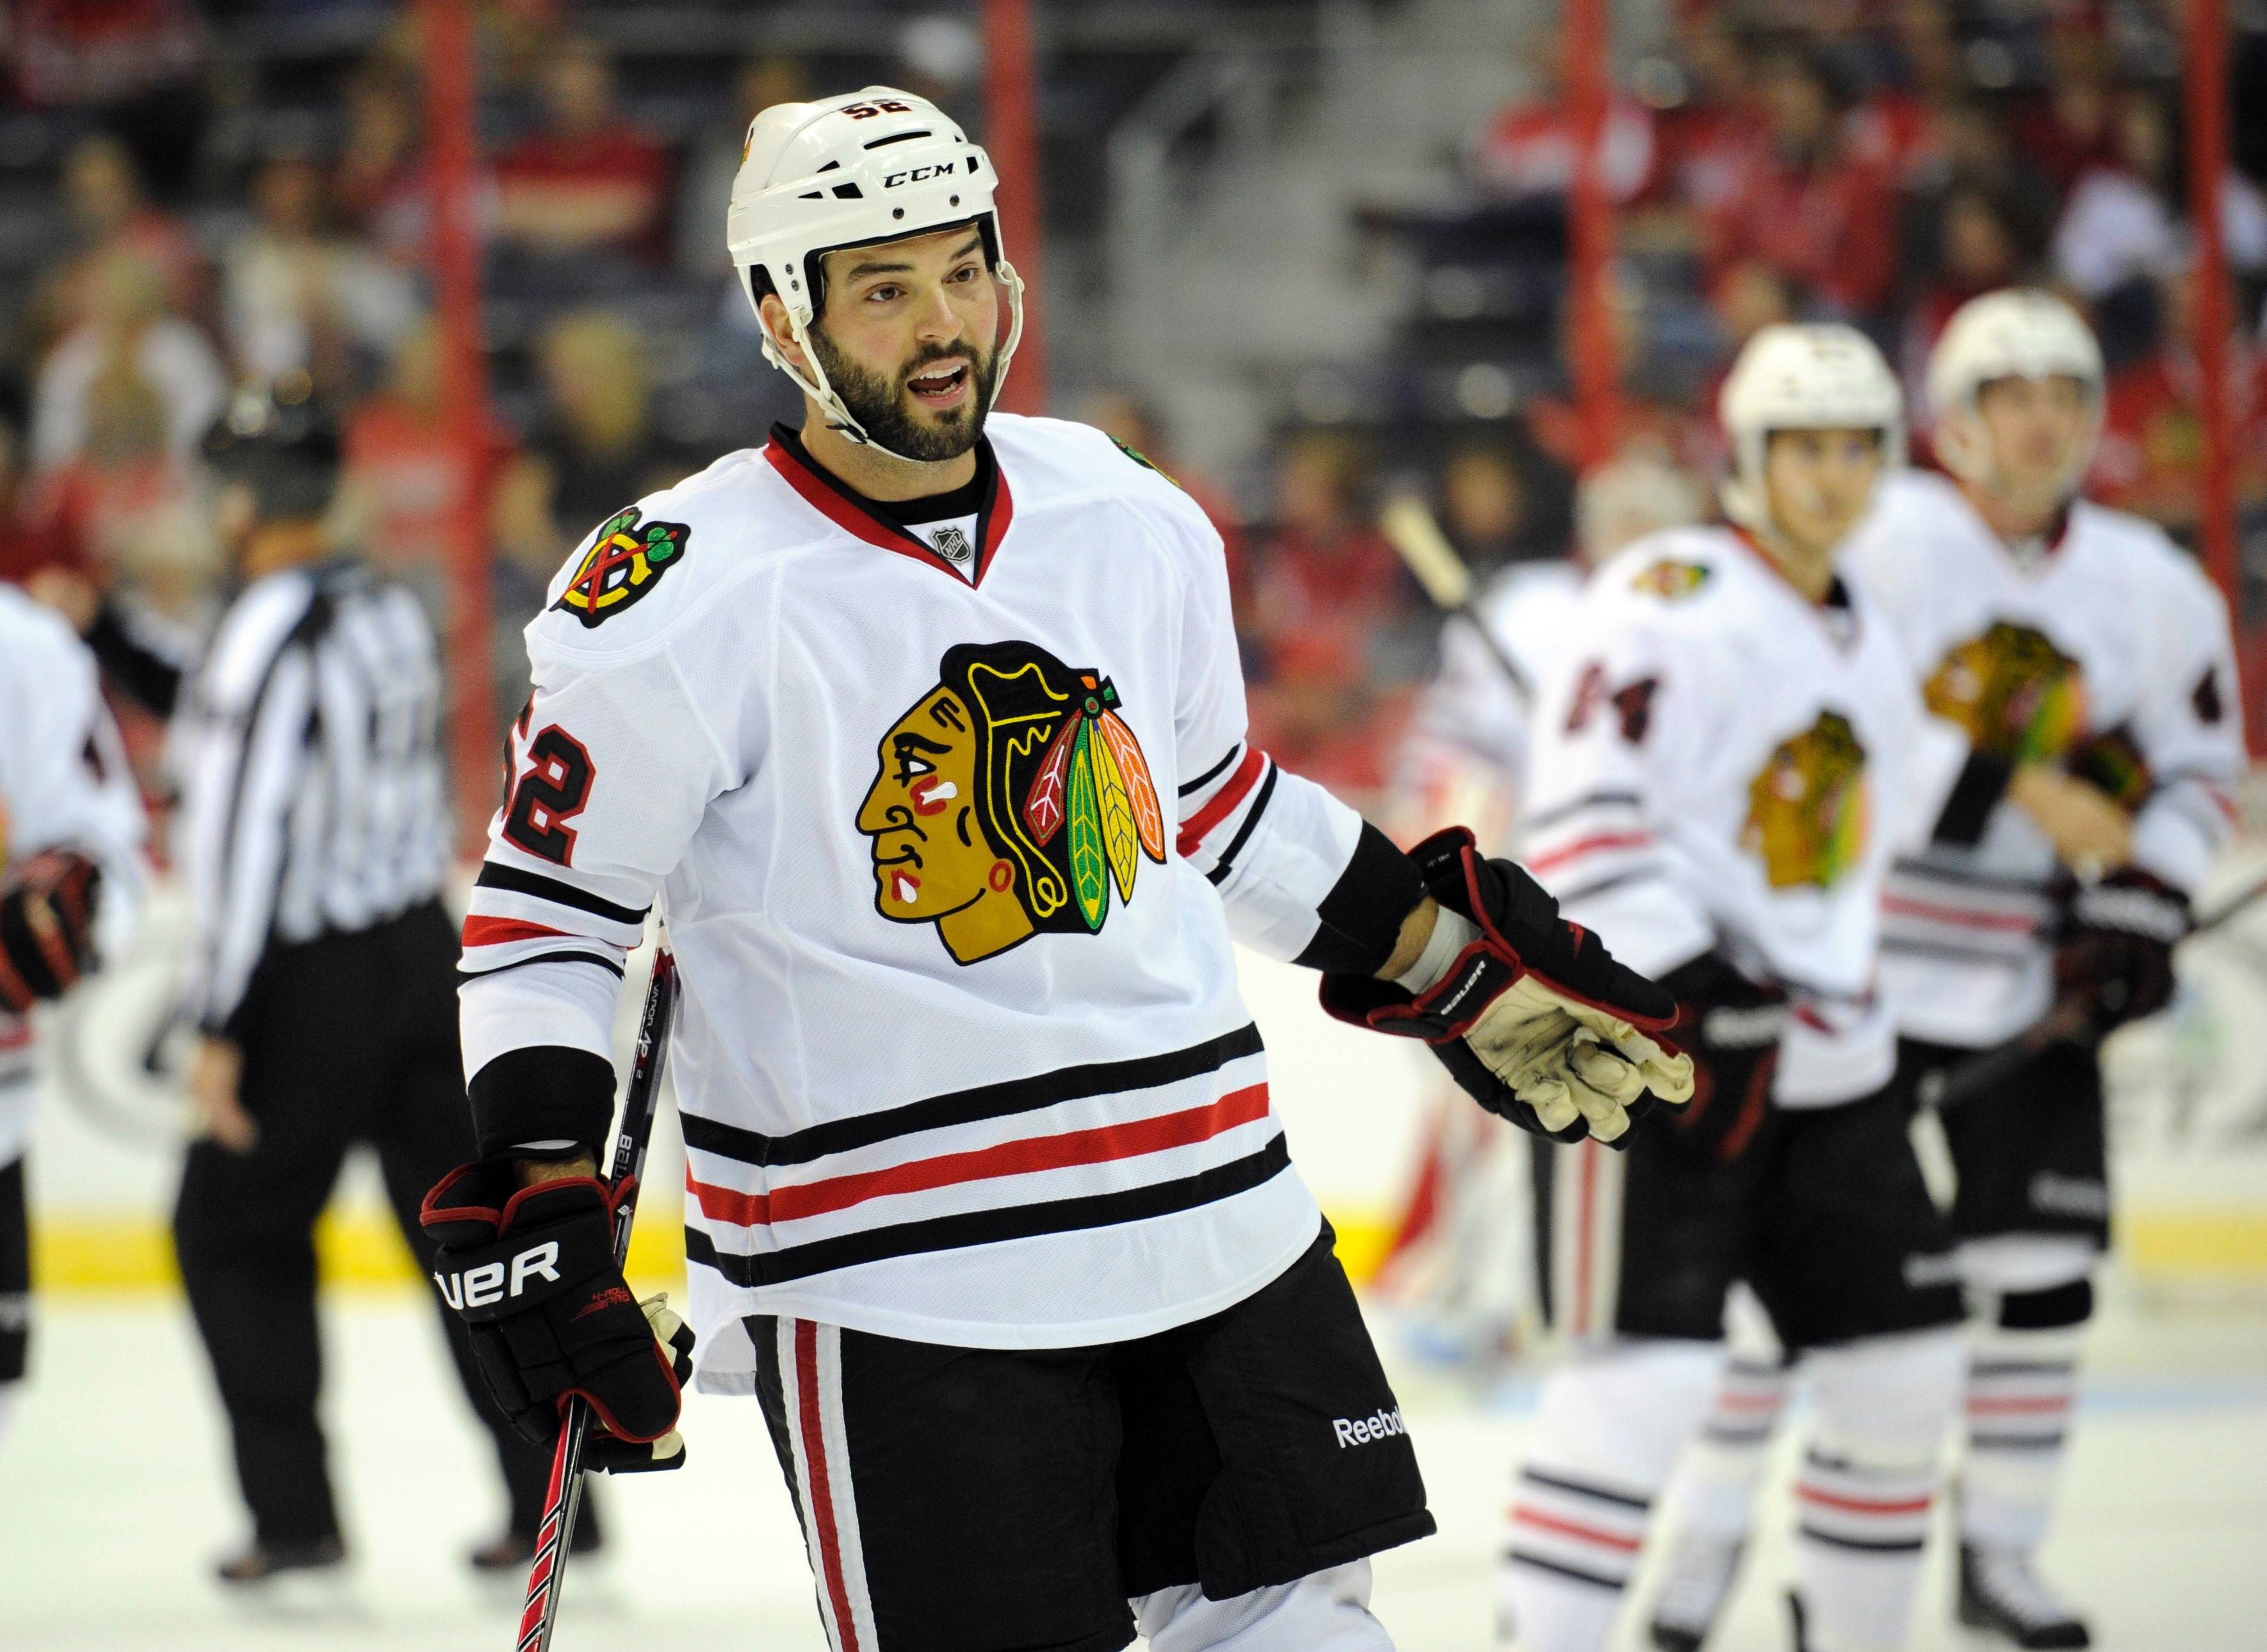 The Blackhawks will be without Brandon Bollig for Games 5 and 6 against the Minnesota Wild.